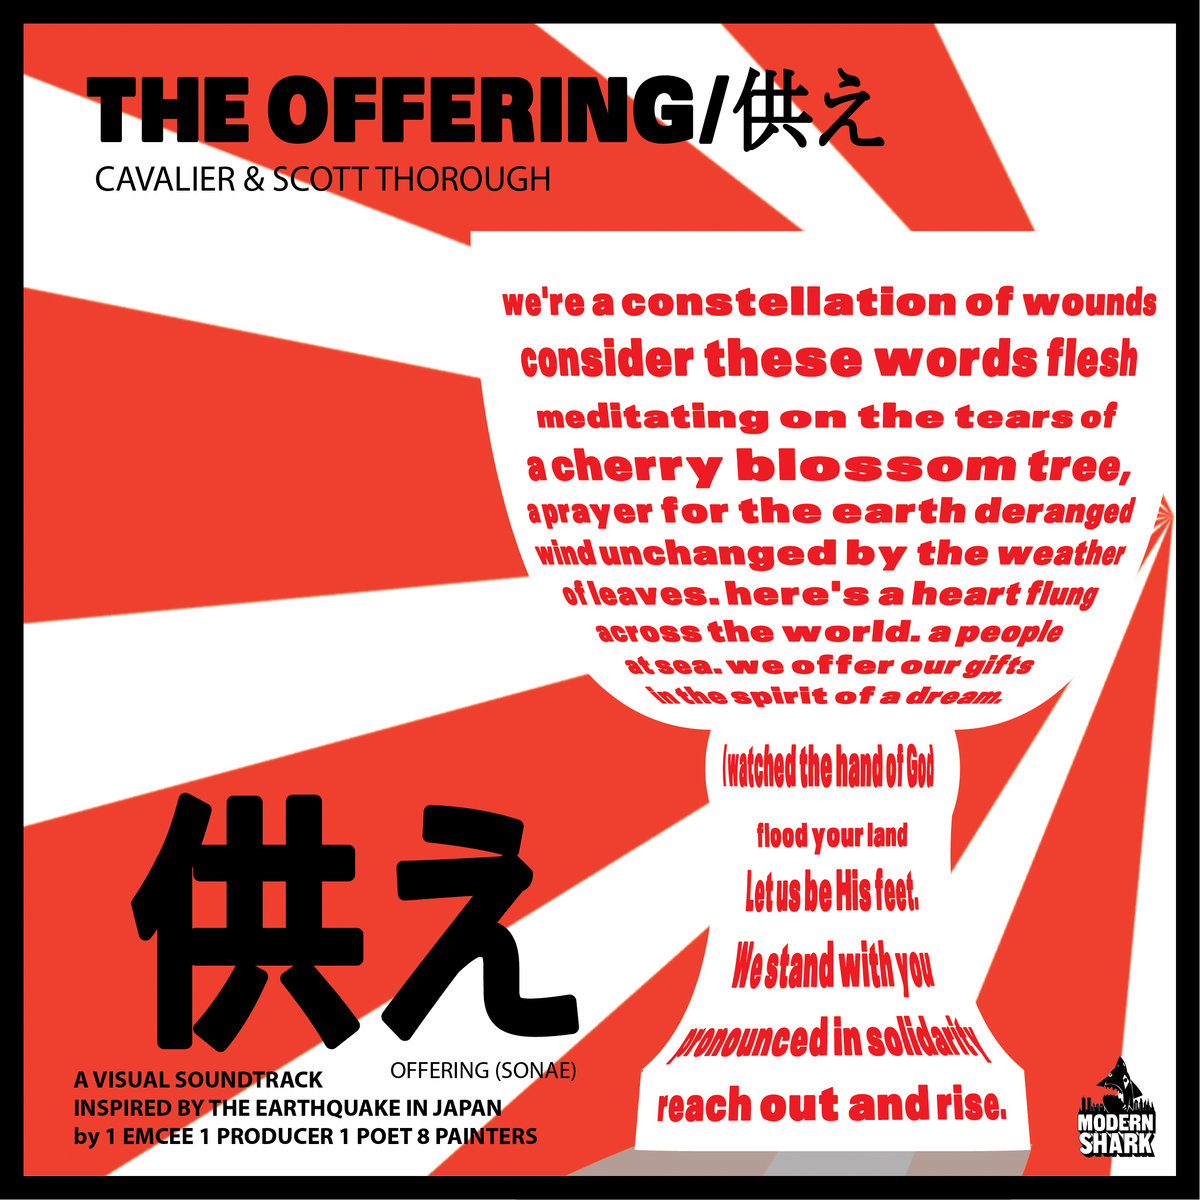 Album cover for Cavalier and Scott Thorough's Japanese disaster relief album The Offering